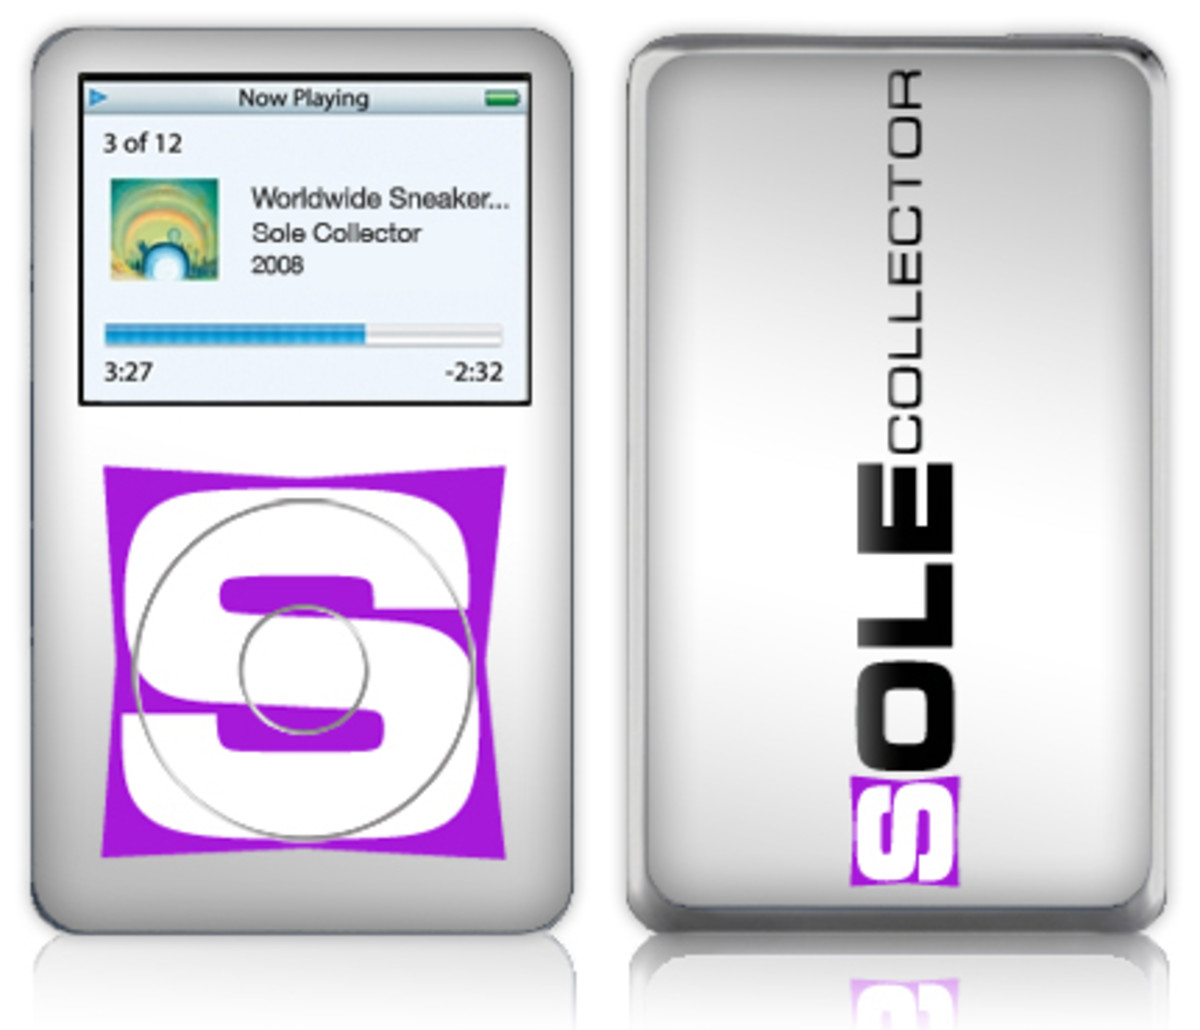 Music Skins x Sole Collector - iPod Video